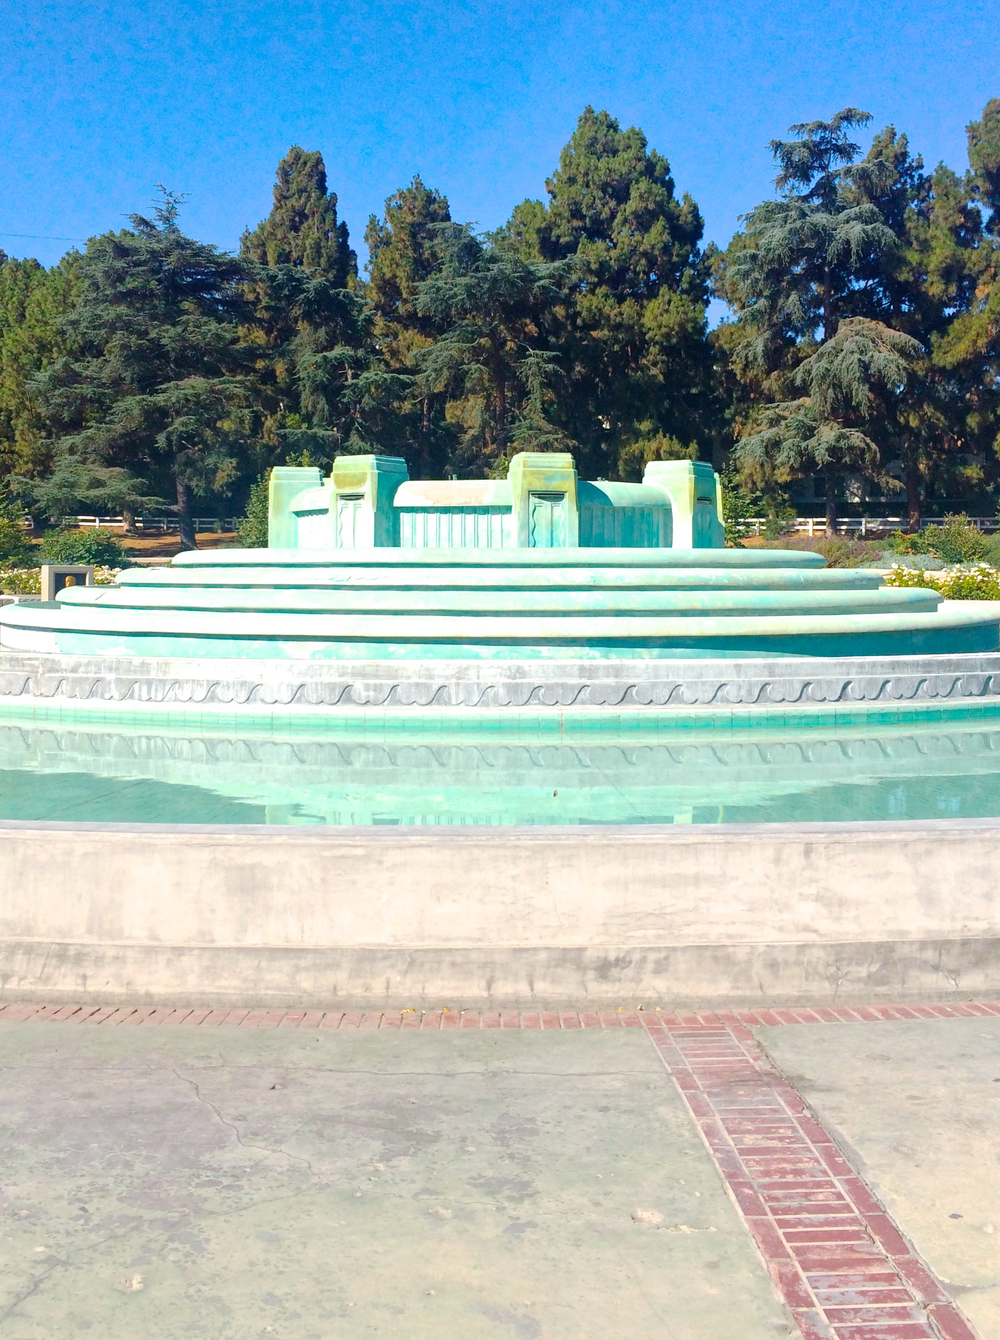 los-feliz-art-deco-fountain.jpg